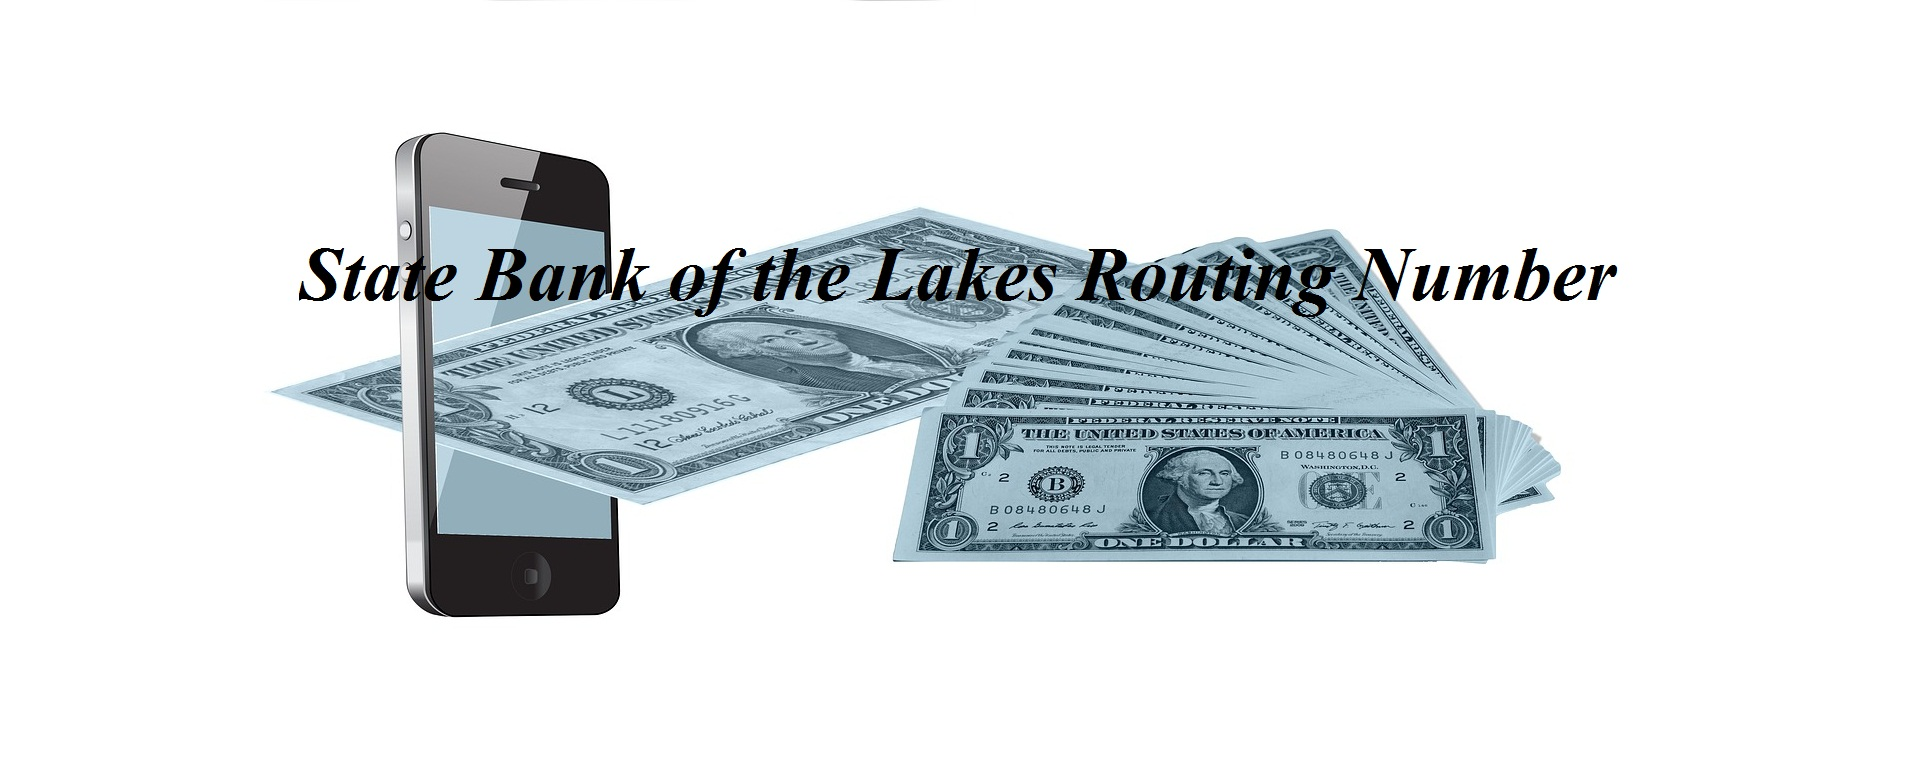 State Bank of the Lakes Routing Number